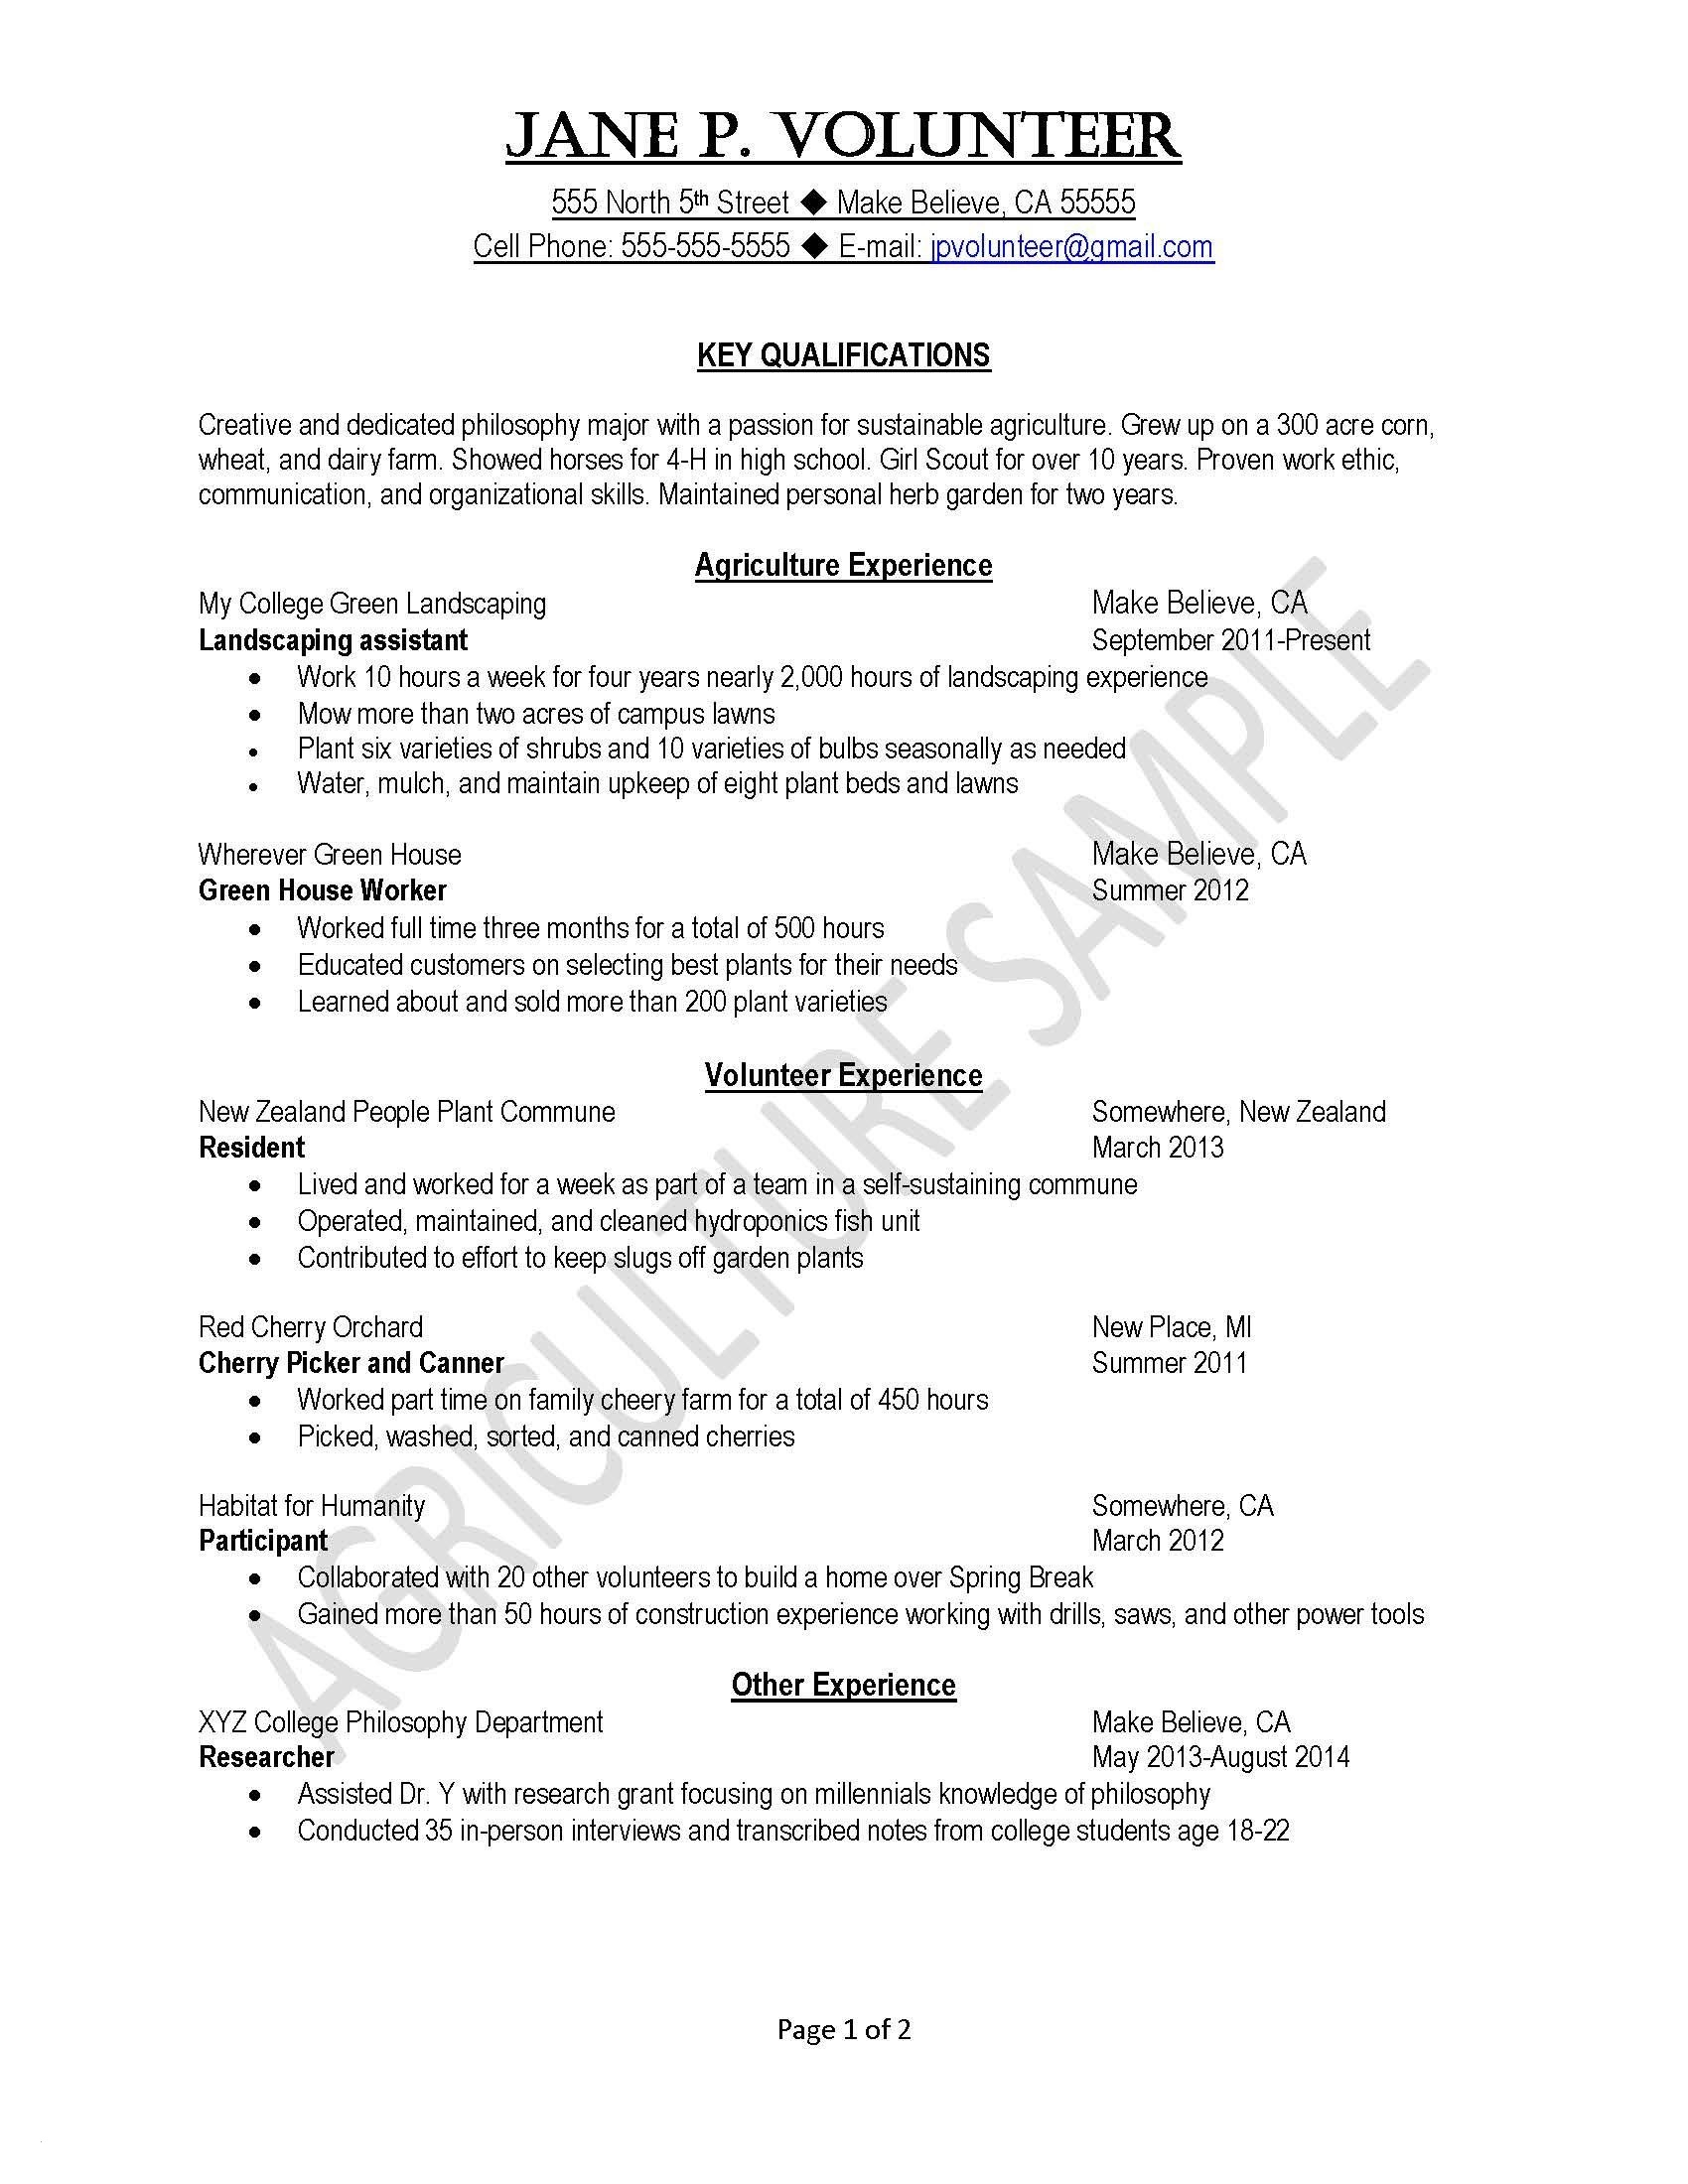 Resume Builder for Highschool Students - Resume Templates for College Applications Awesome Awesome Sample